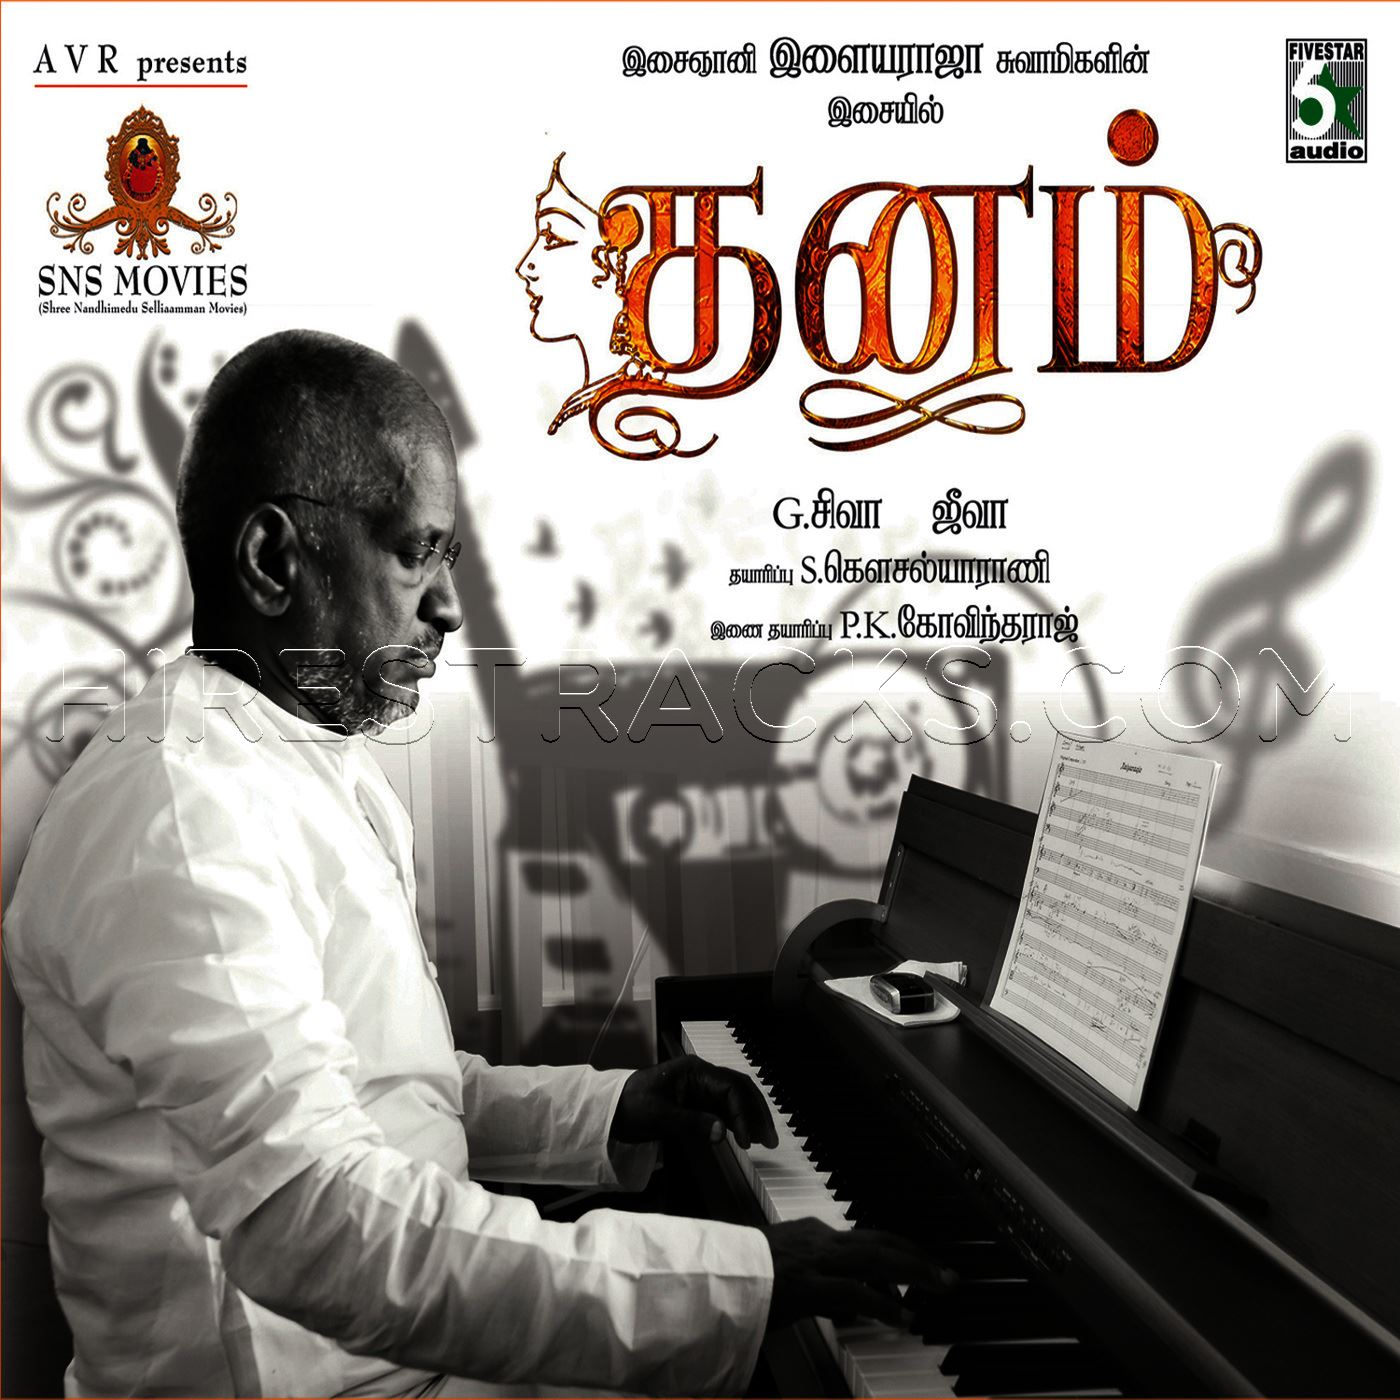 Dhanam (2013) (Ilaiyaraaja) (Five Star Audio) [Digital-DL-FLAC]